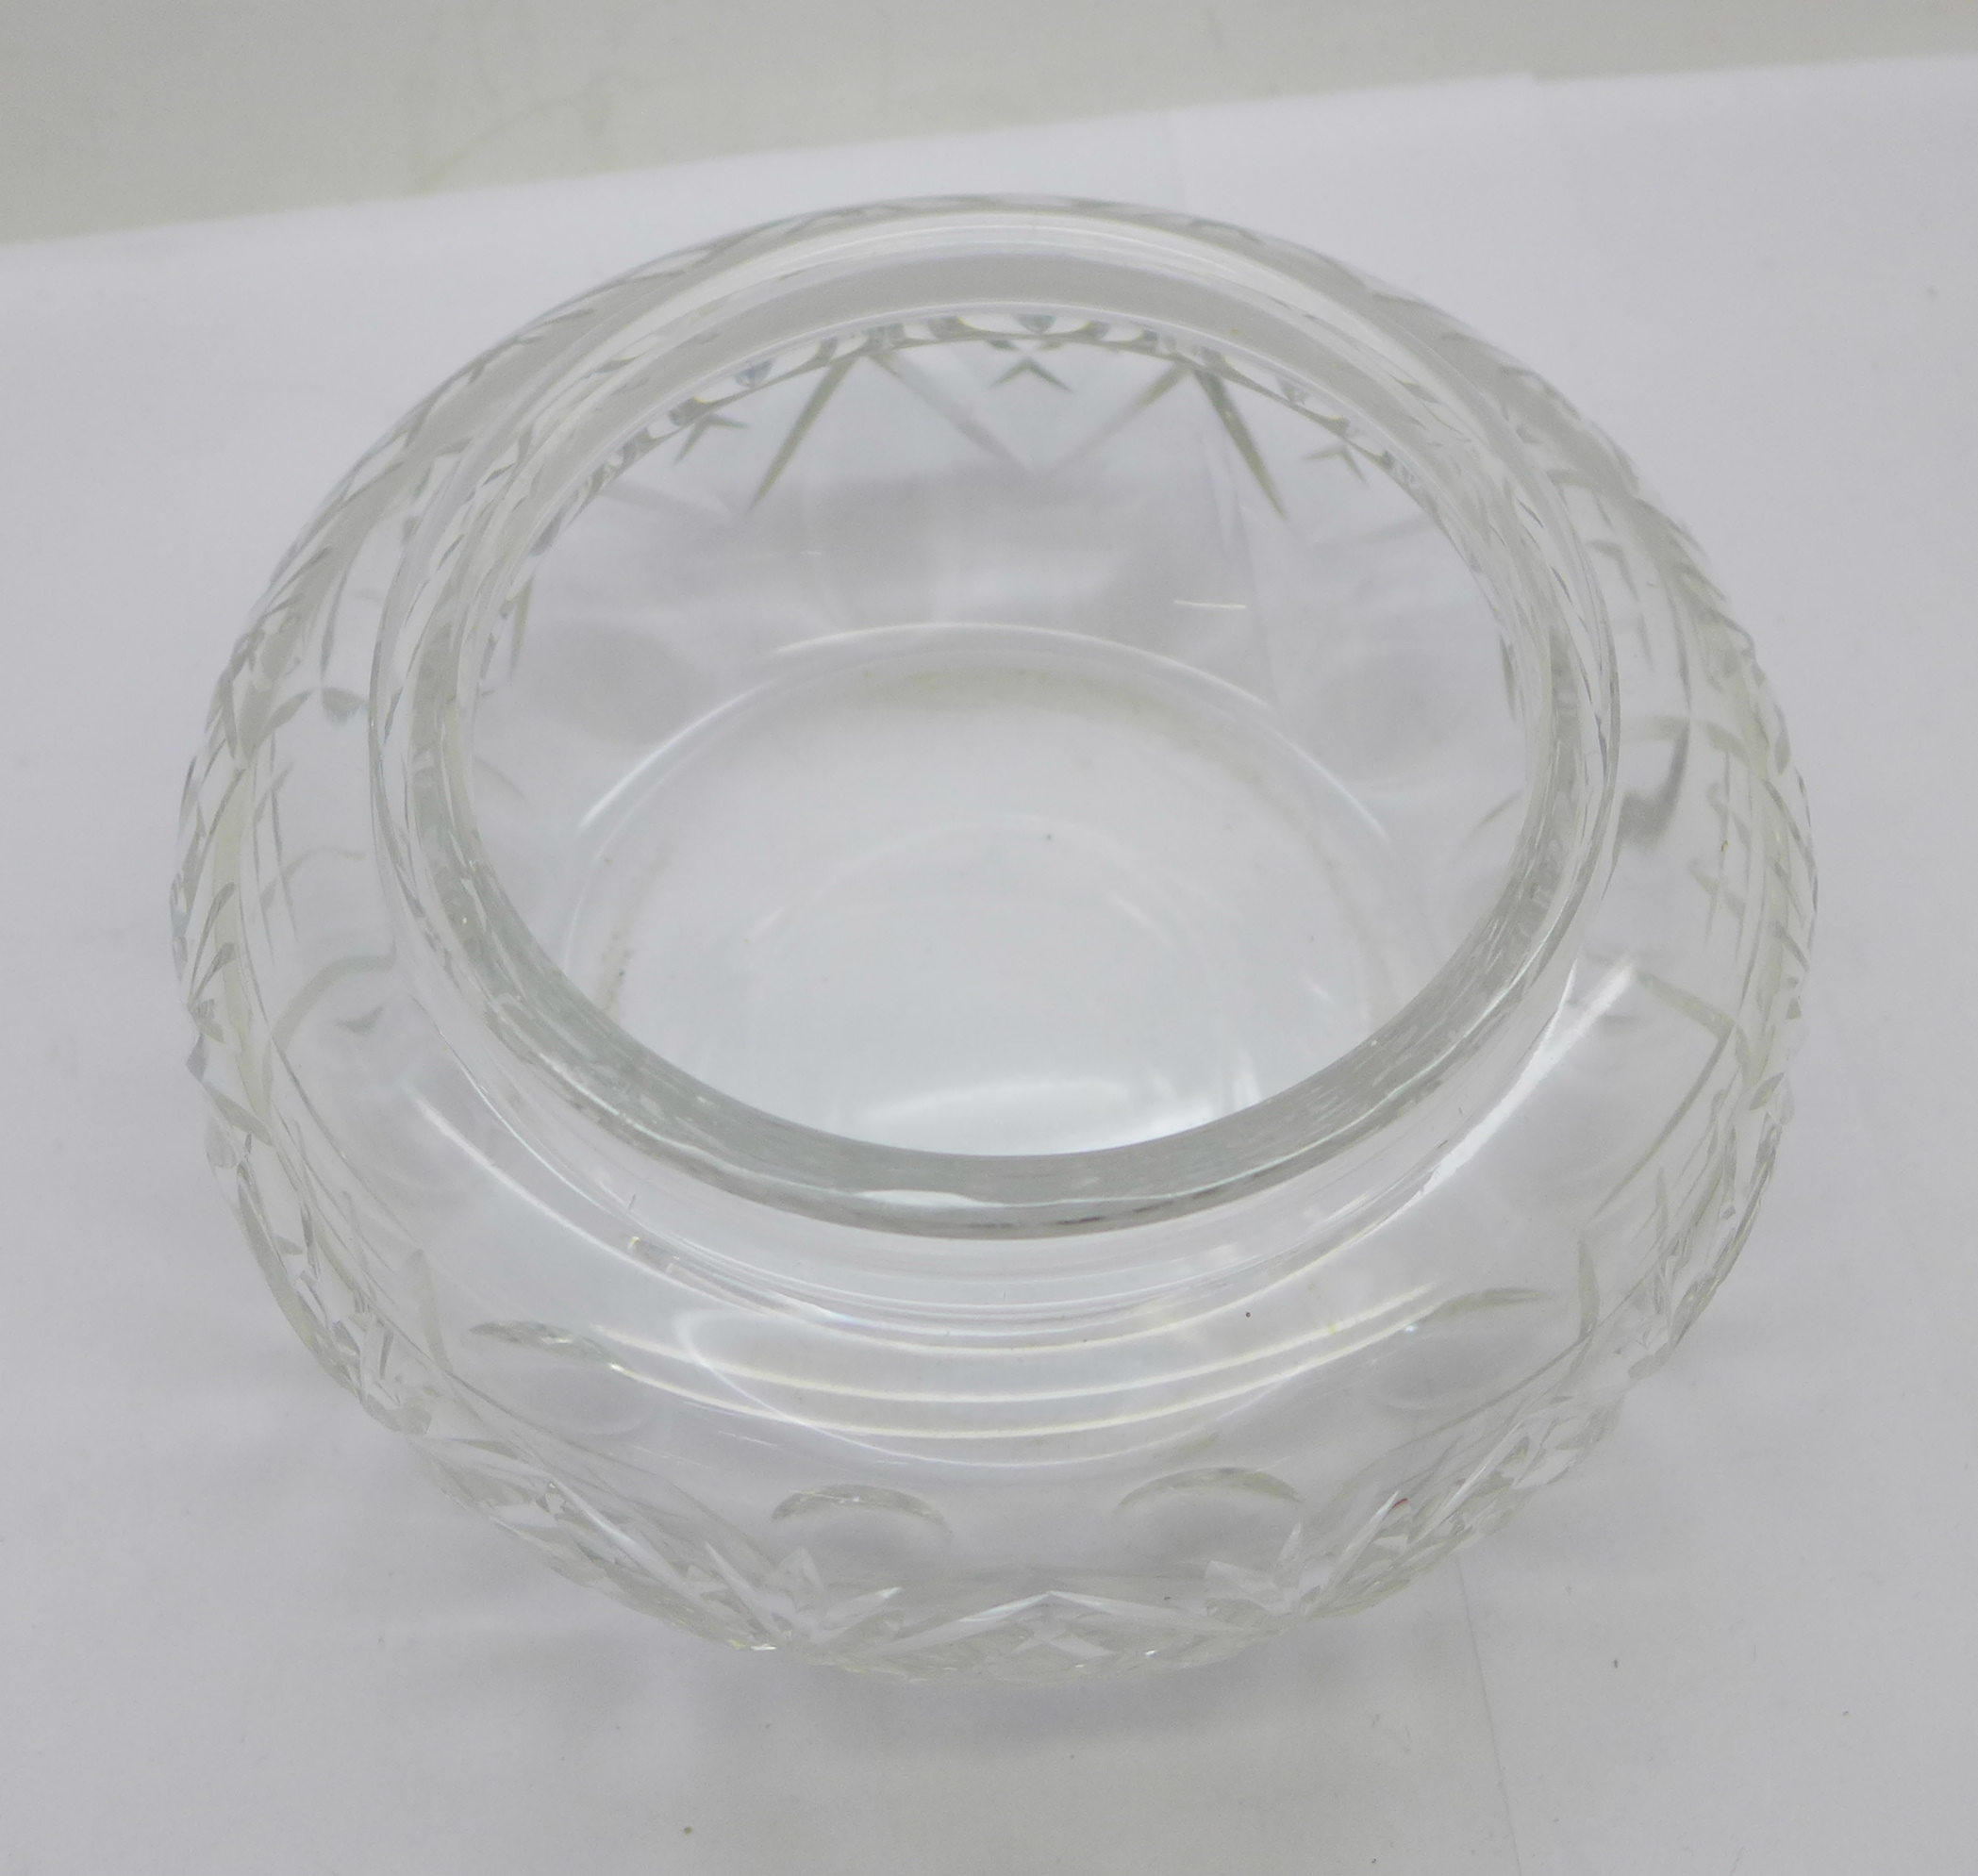 A large silver topped glass jar, the lid marked sterling silver and weighs 72g, diameter of glass - Image 4 of 5